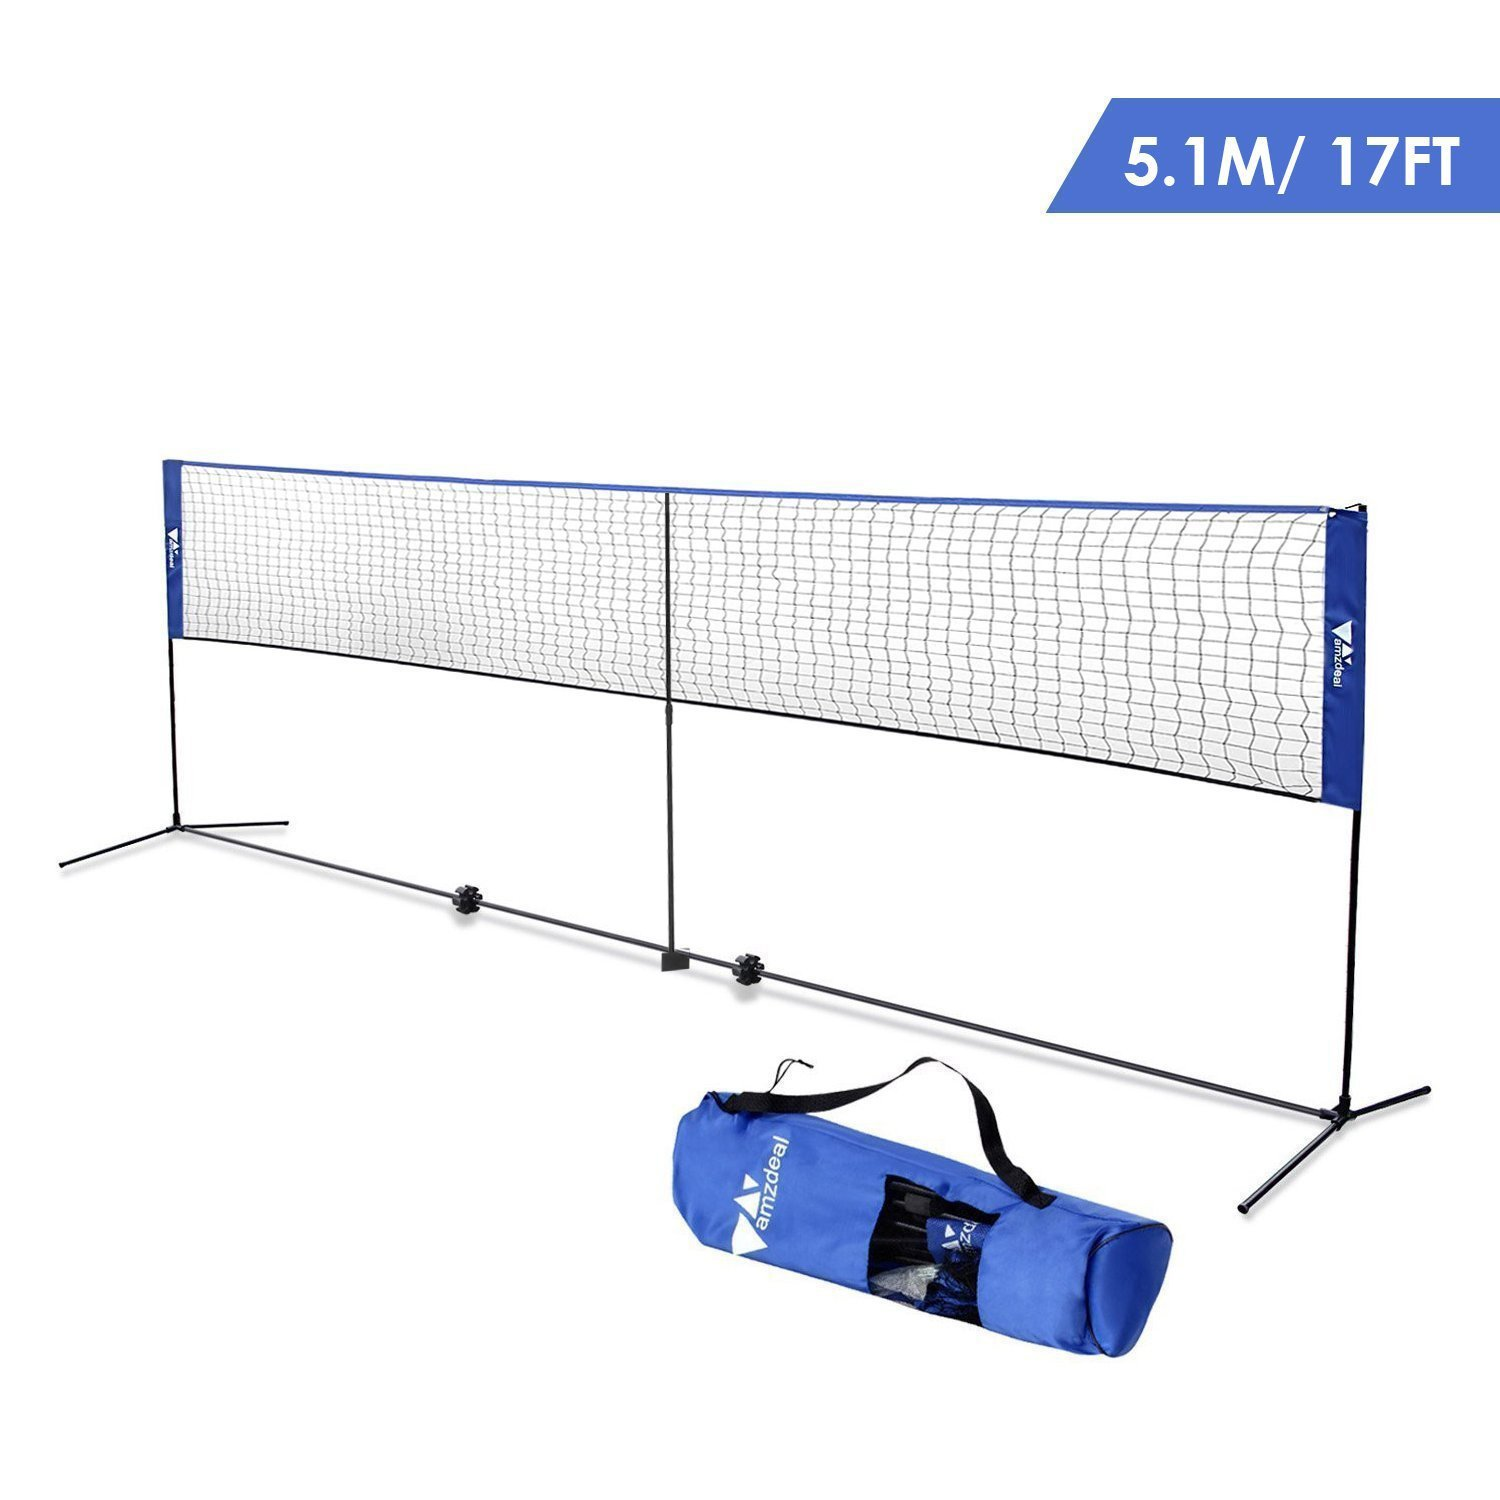 amzdeal Badminton Net 17ft Height Adjustable Portable Tennis Volleyball Net for Indoor Outdoor Use with Stand/Frame